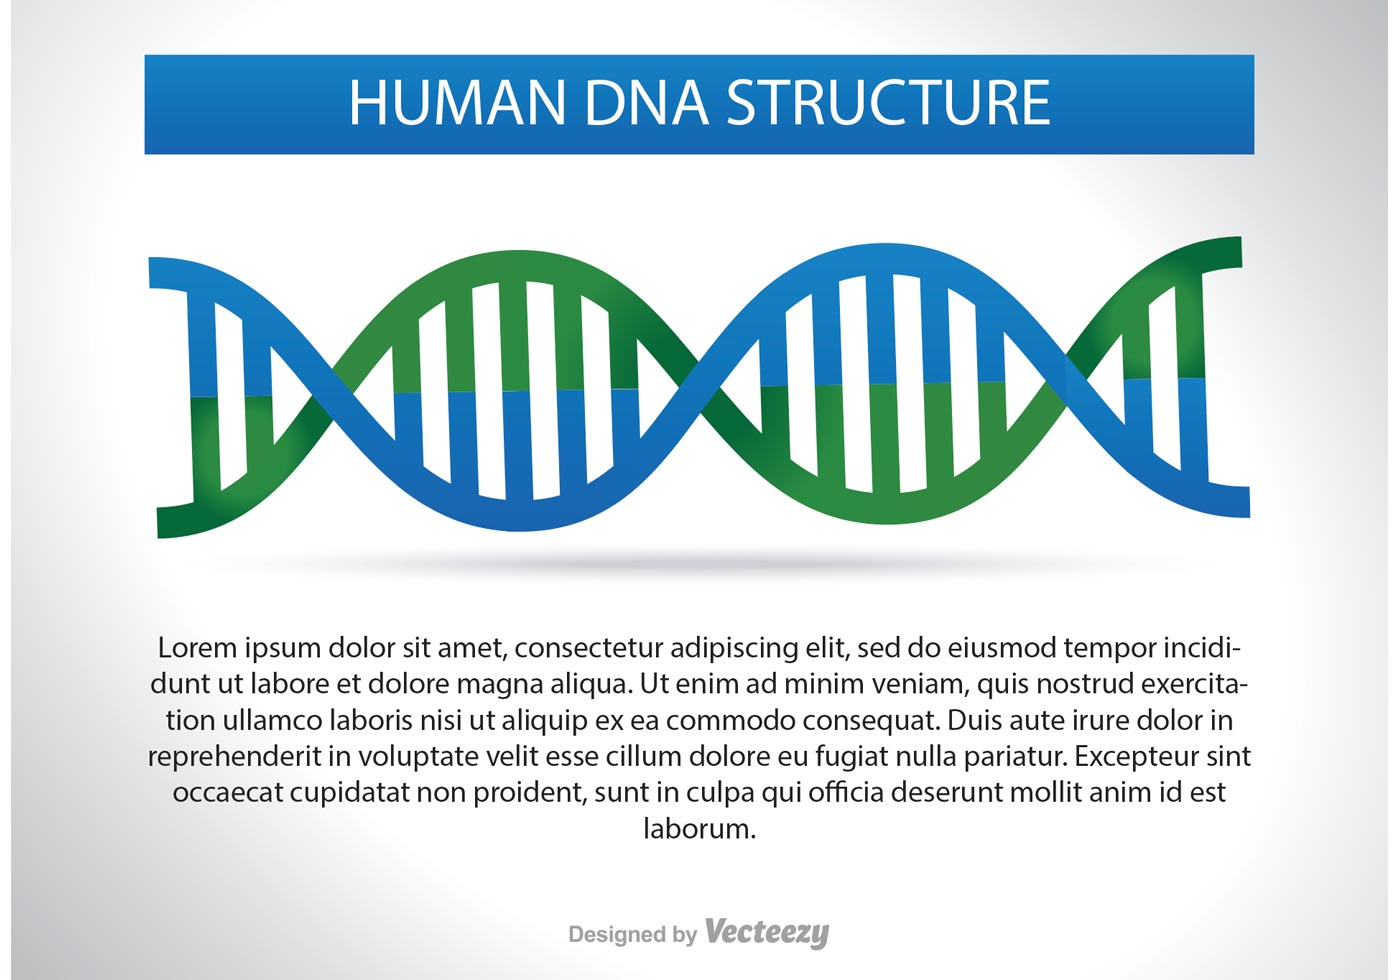 chromosome structure diagram apac air conditioner wiring diagrams dna illustration download free vector art